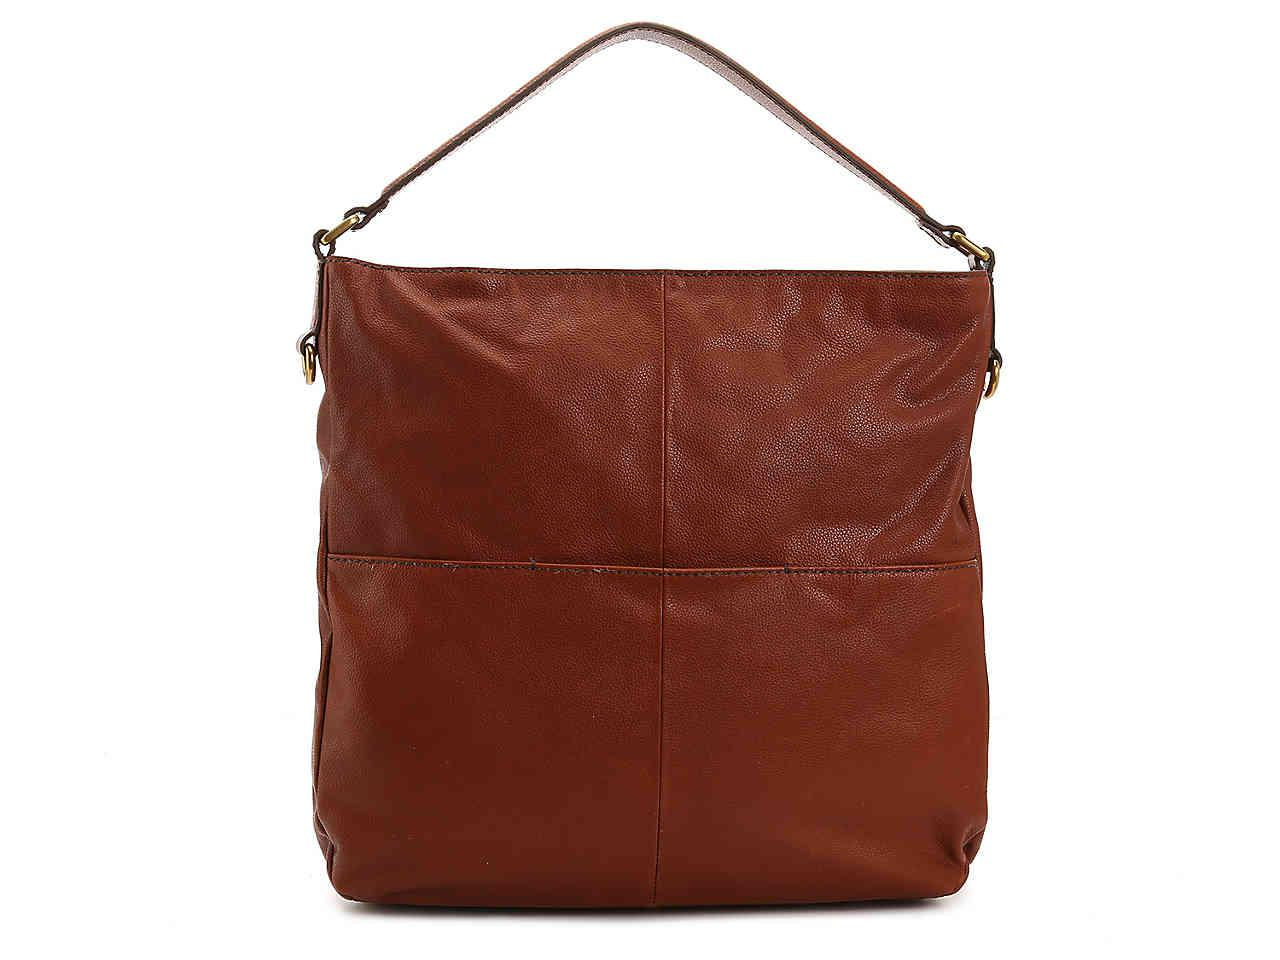 Fossil - Brown Corey Leather Hobo Bag - Lyst. View fullscreen c2afc4b348